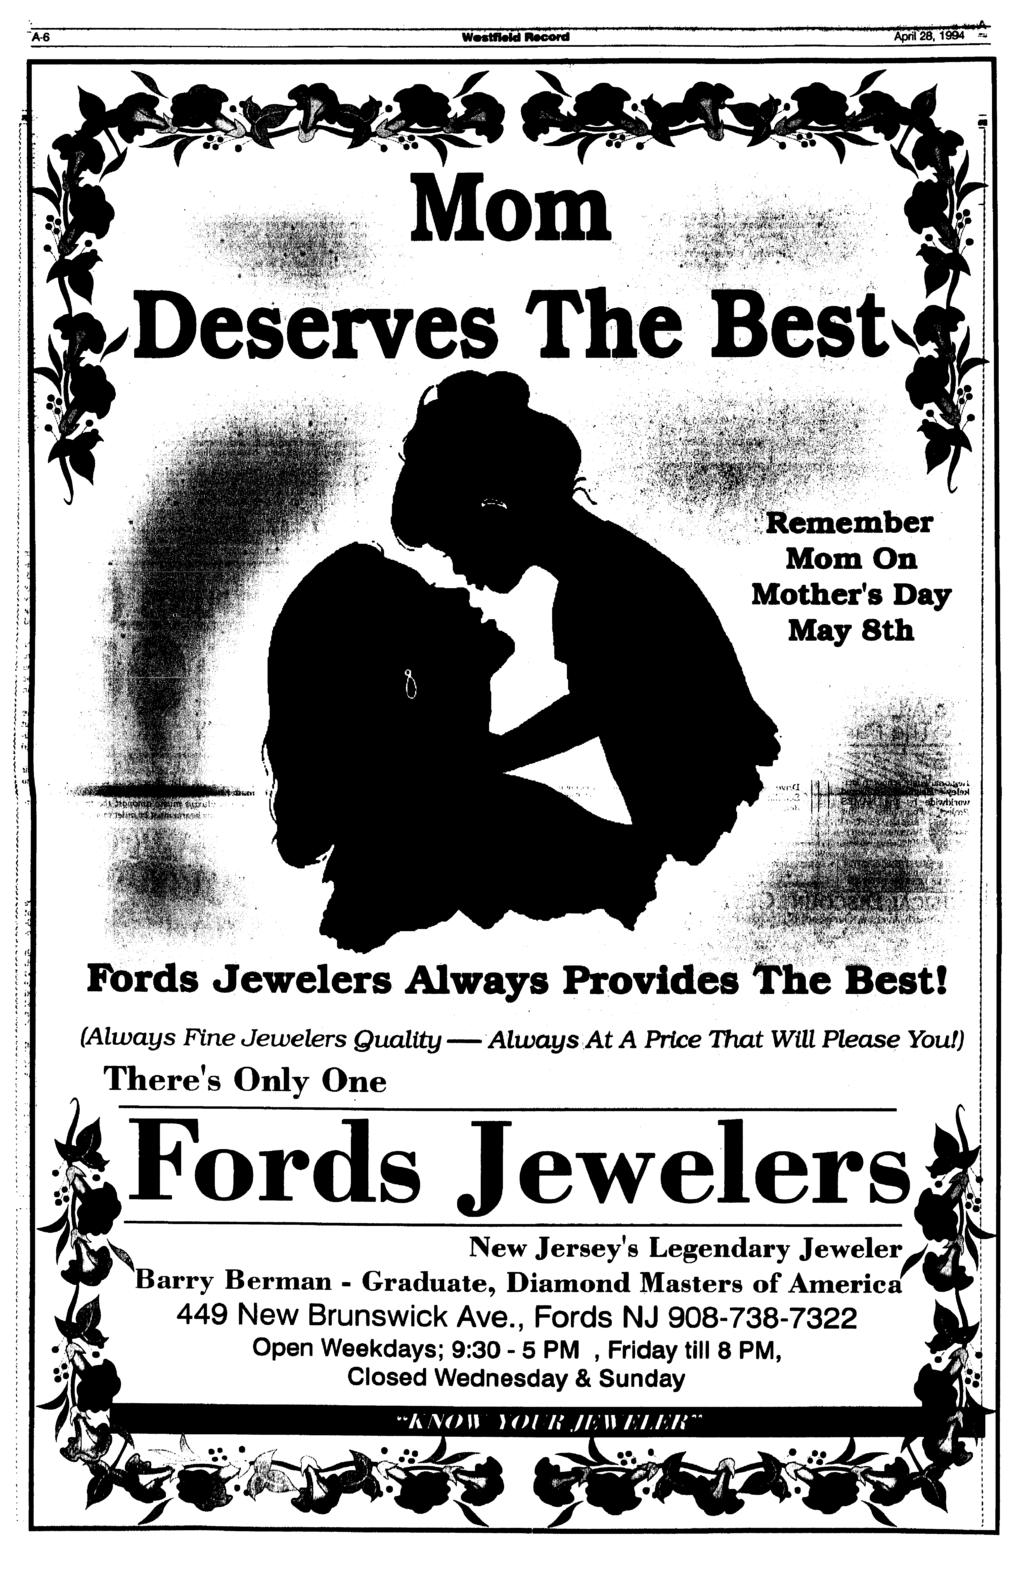 "W«stfMd Record,1994 «. ^'W r it Mom Deserves The Best, *.<*. atinber Mom On Mother's Day May 8th. fl?'ik"" ««fl'bli'v, -'I \ Fords Jewelers Always Provides The Best!"